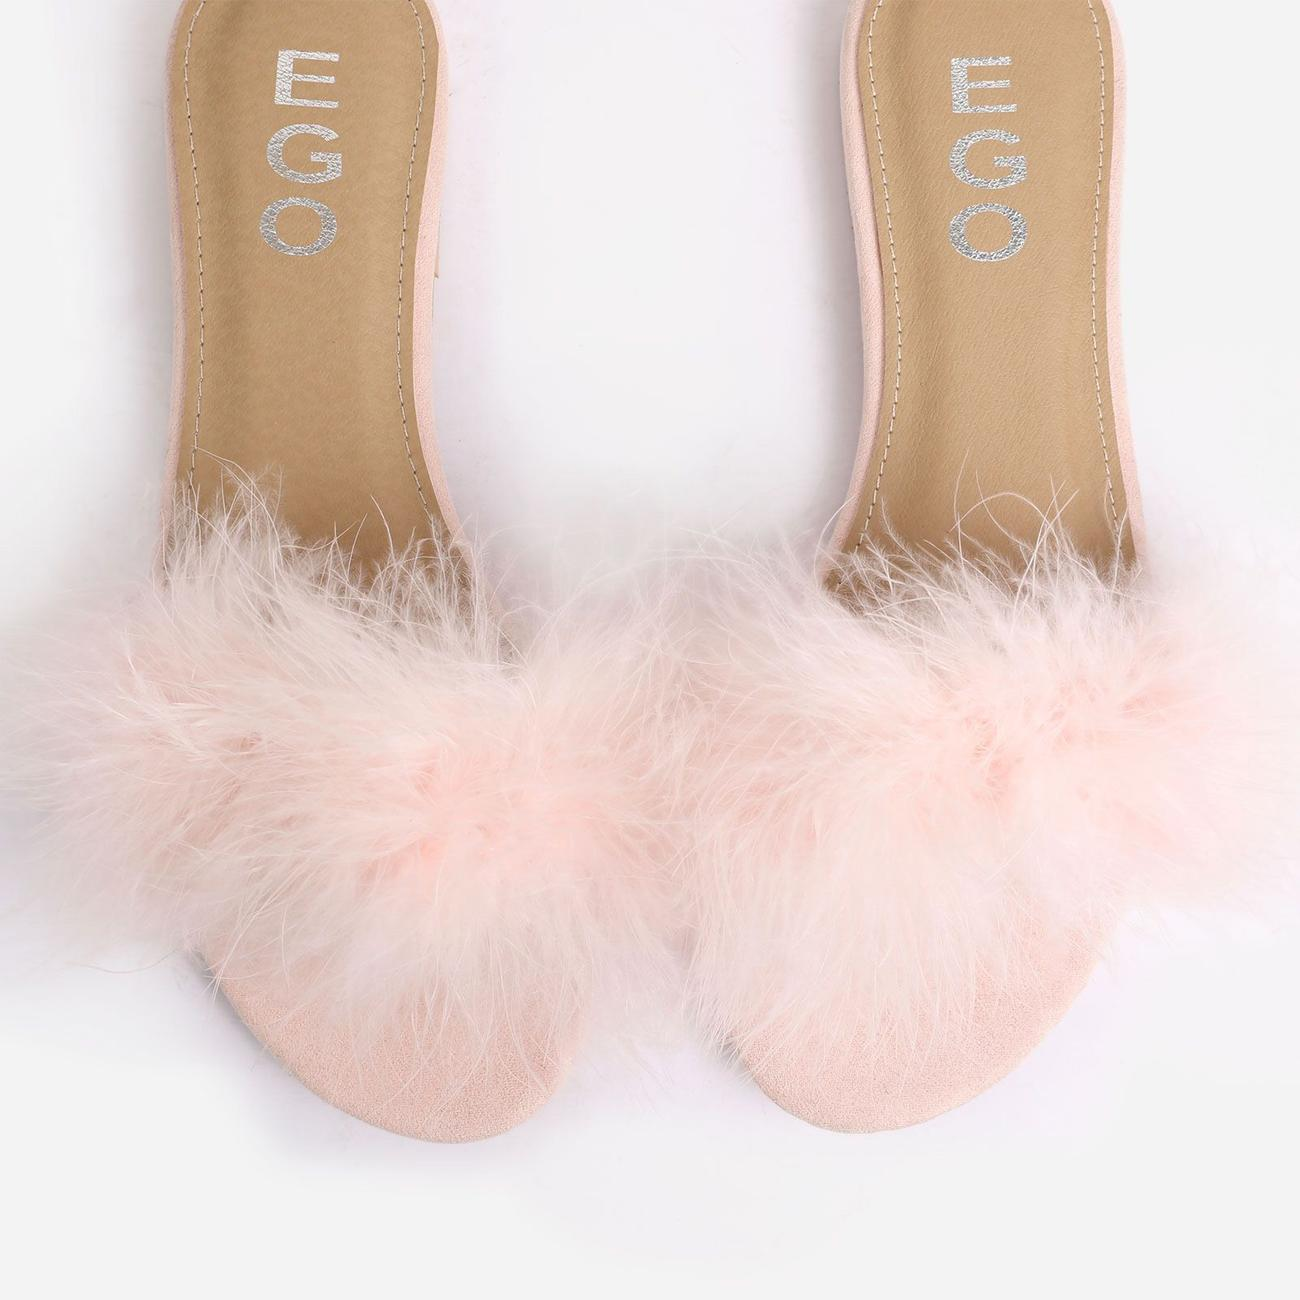 Bestfriend Faux Feather Detail Flat Slider Sandal In Pink Faux Suede Image 4